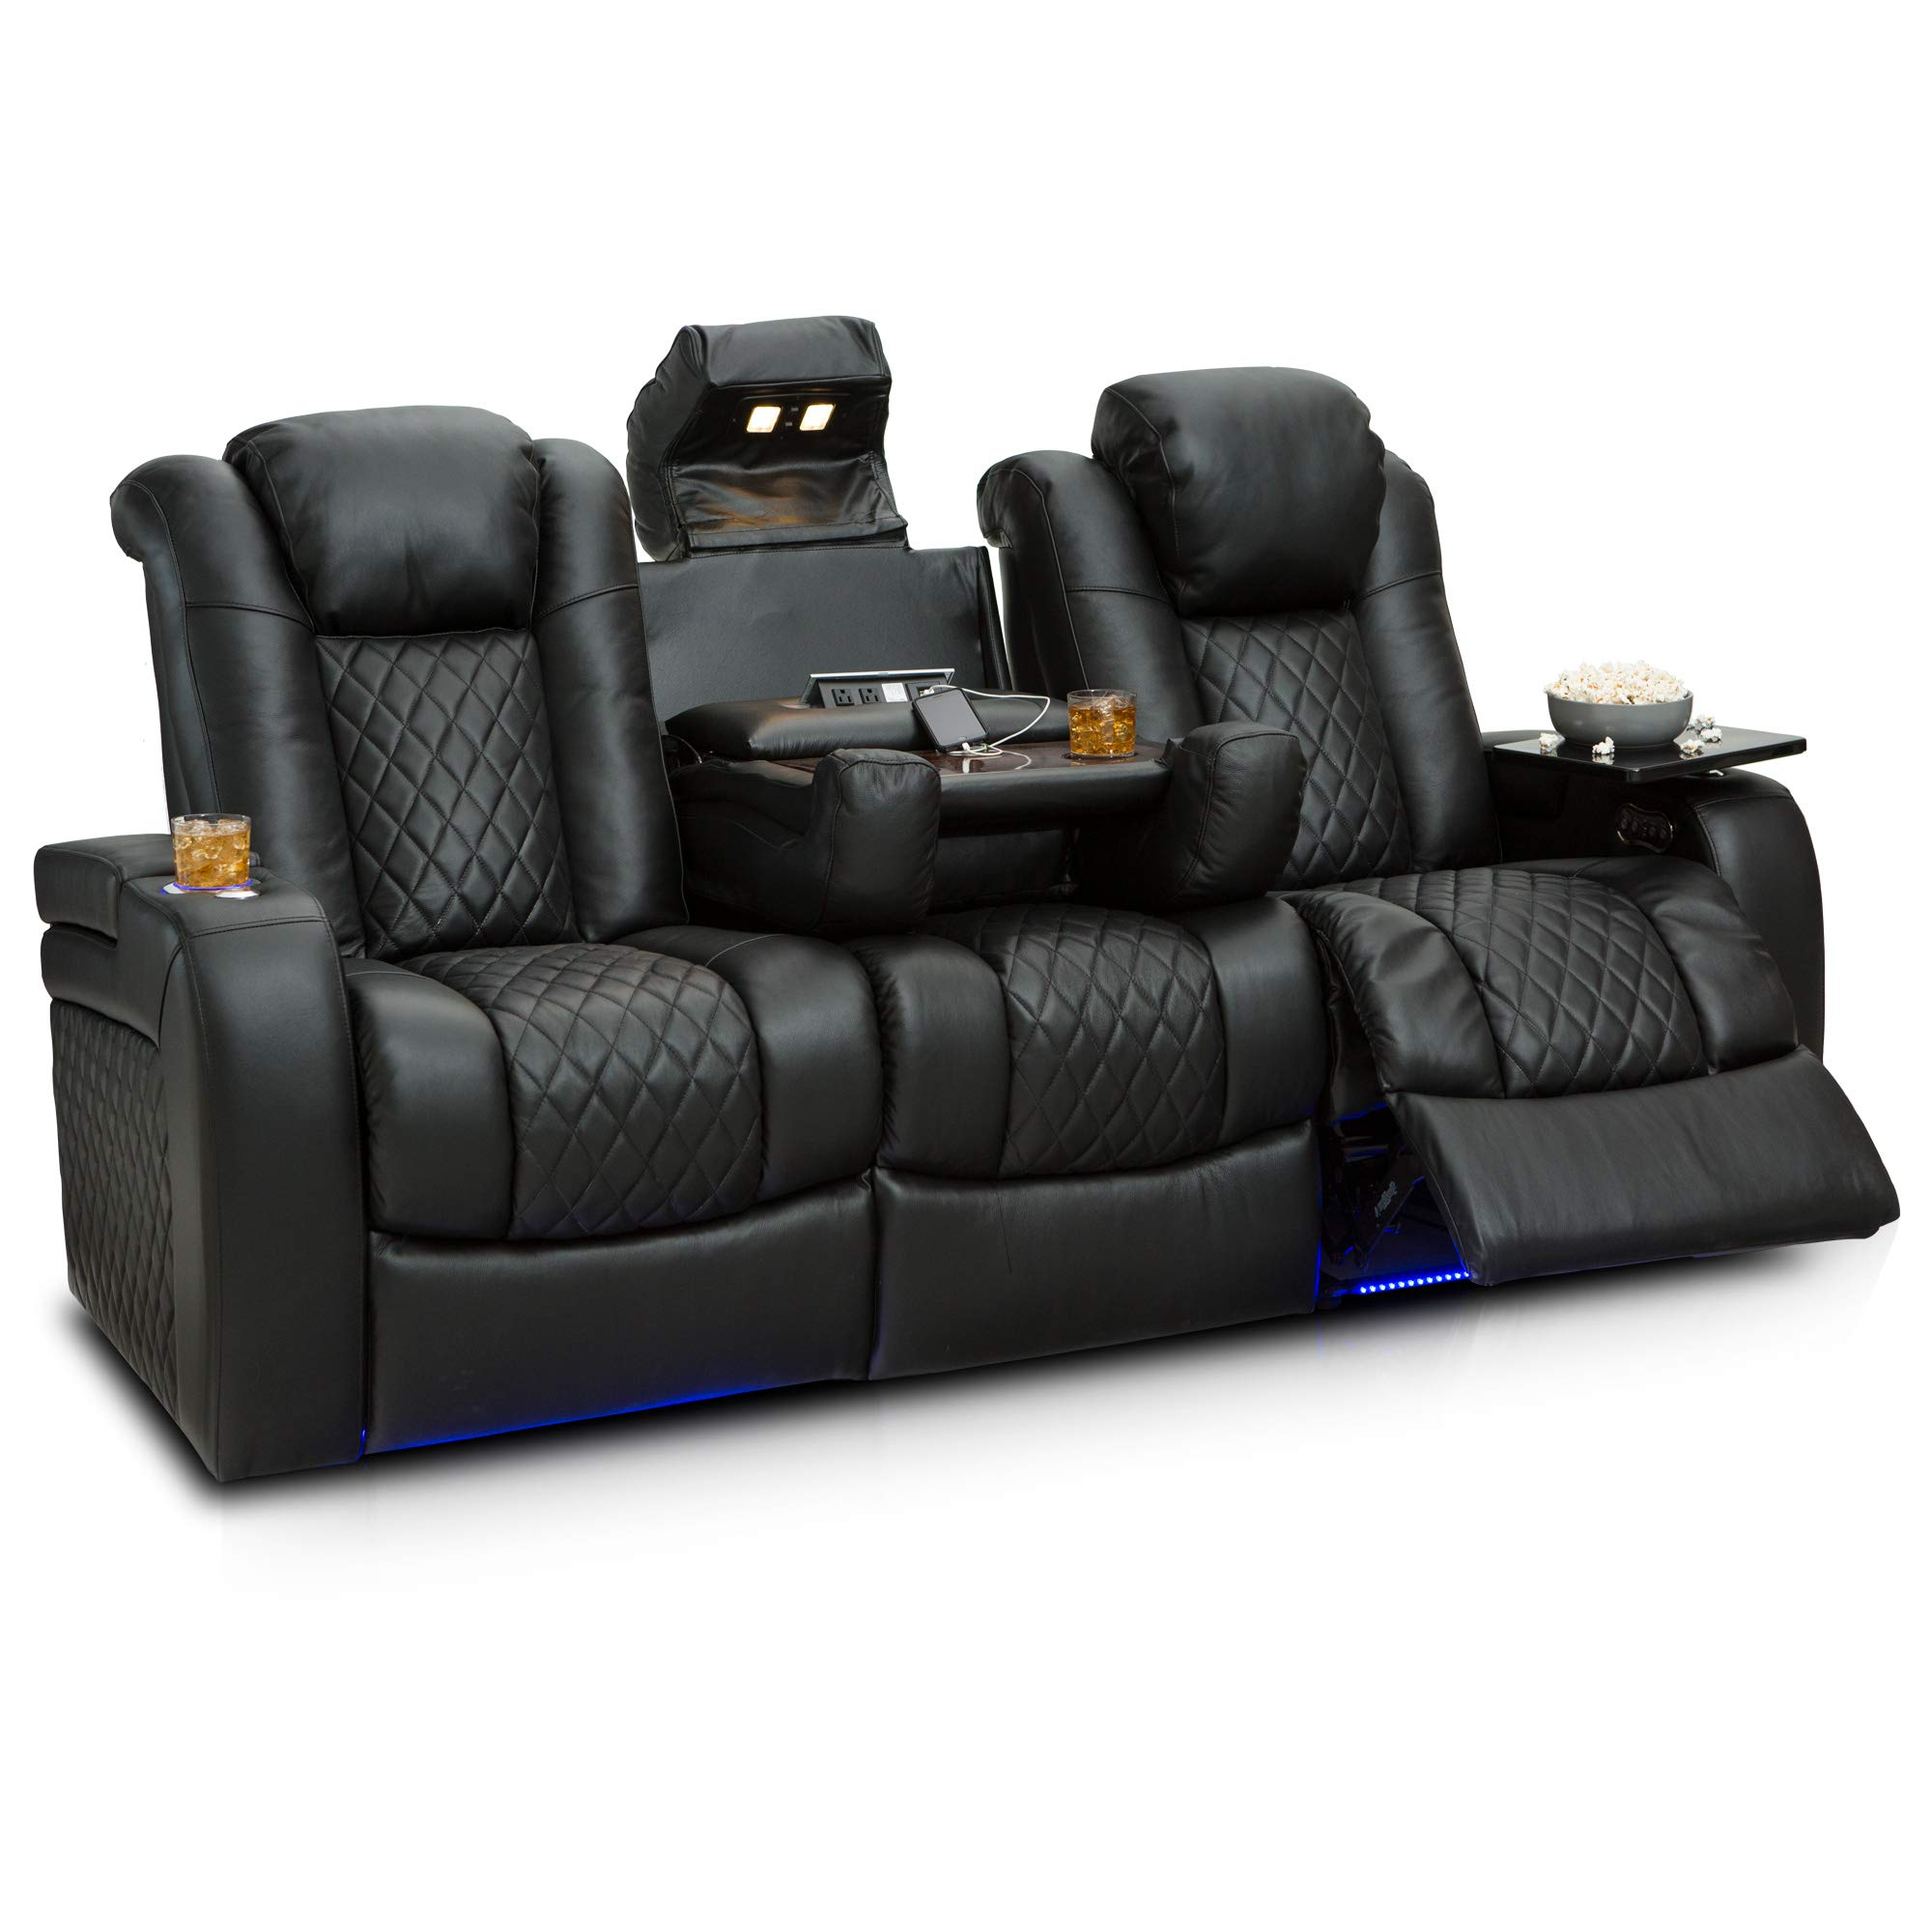 Seatcraft Anthem Home Theater Seating Leather Multimedia Power Recline Sofa with Fold-Down Table, Adjustable Powered Headrests, Storage, AC/USB and Wireless Charging and Cup Holders, Black by Seatcraft